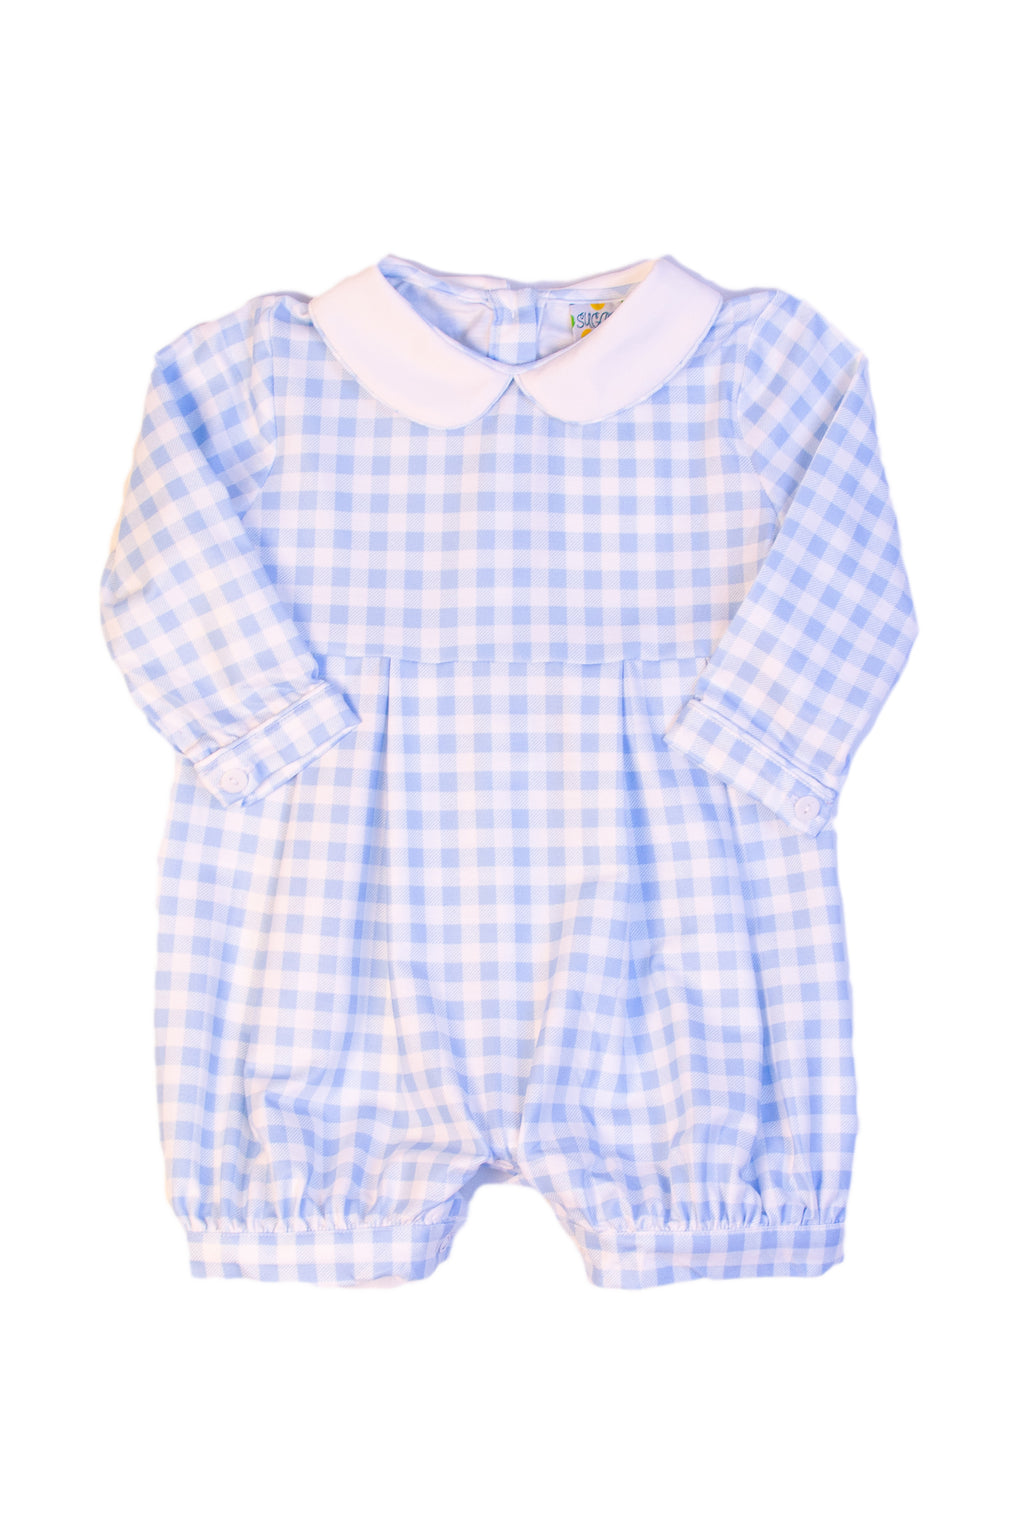 Boys Knit Blue Check Collared Romper